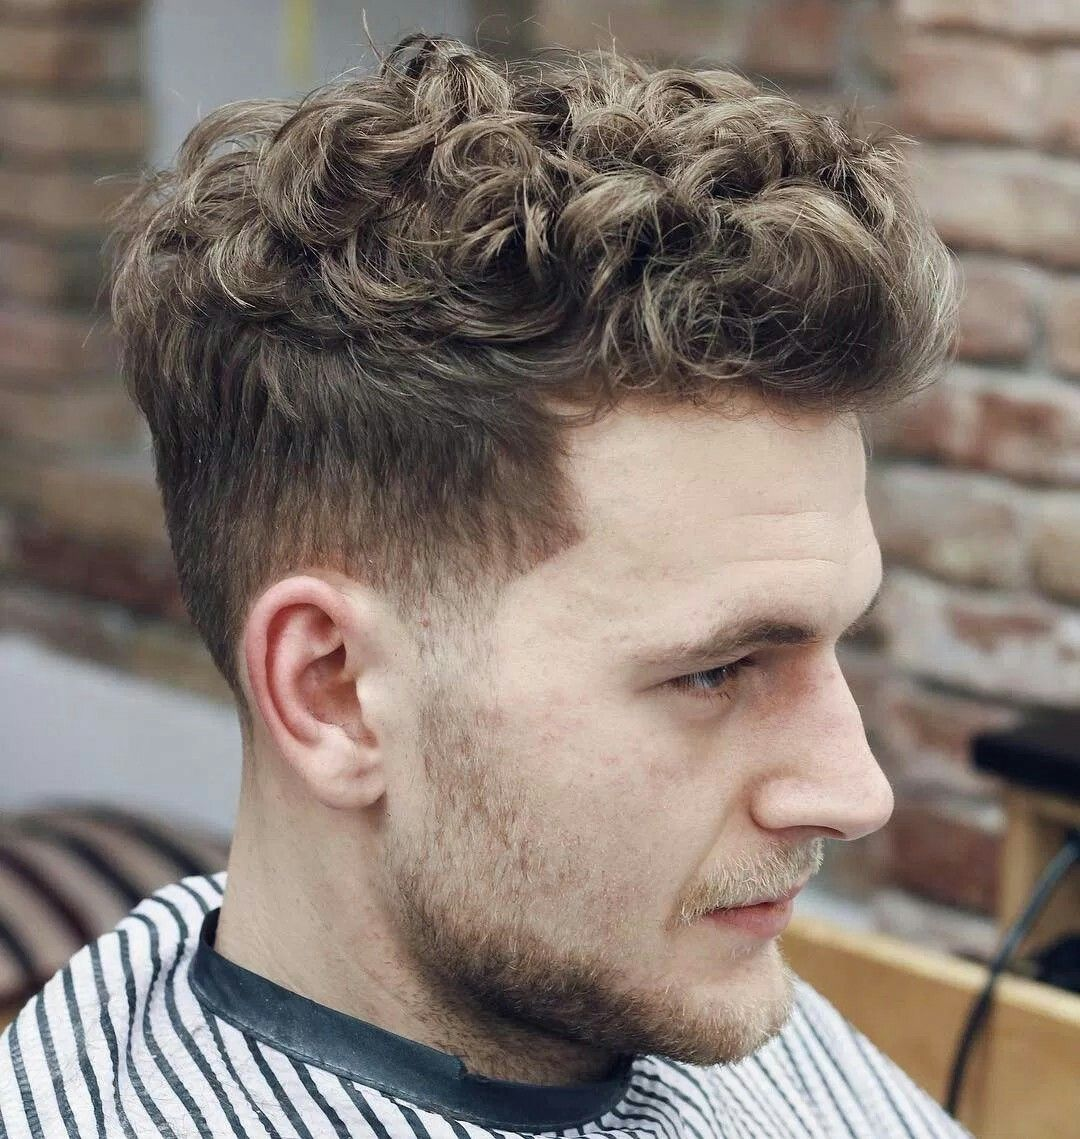 Haircuts for men curly hair curly hairstyles for men   menus hairstyles facial hair and